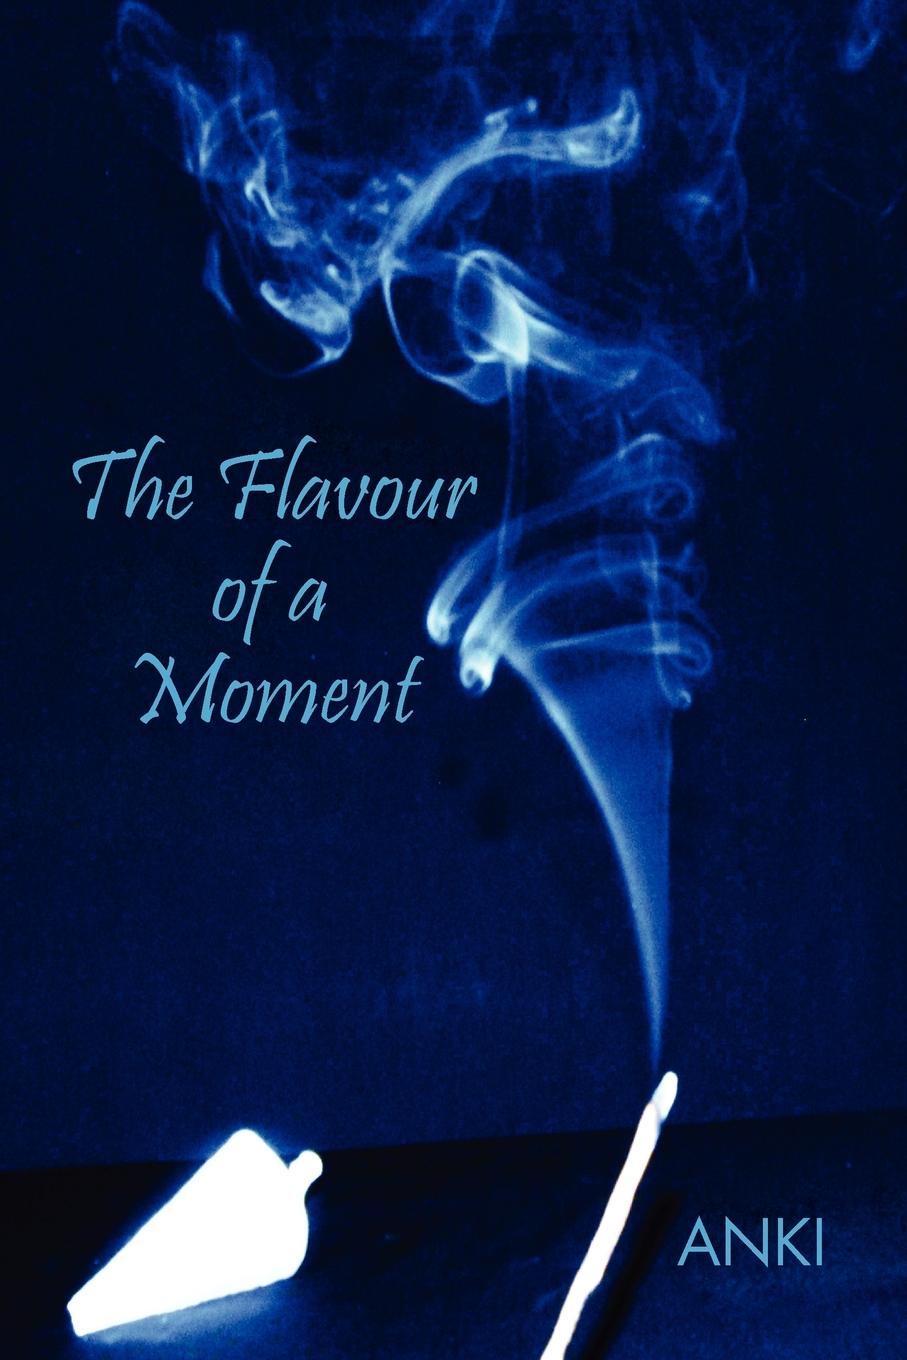 ANKI The Flavour of a Moment